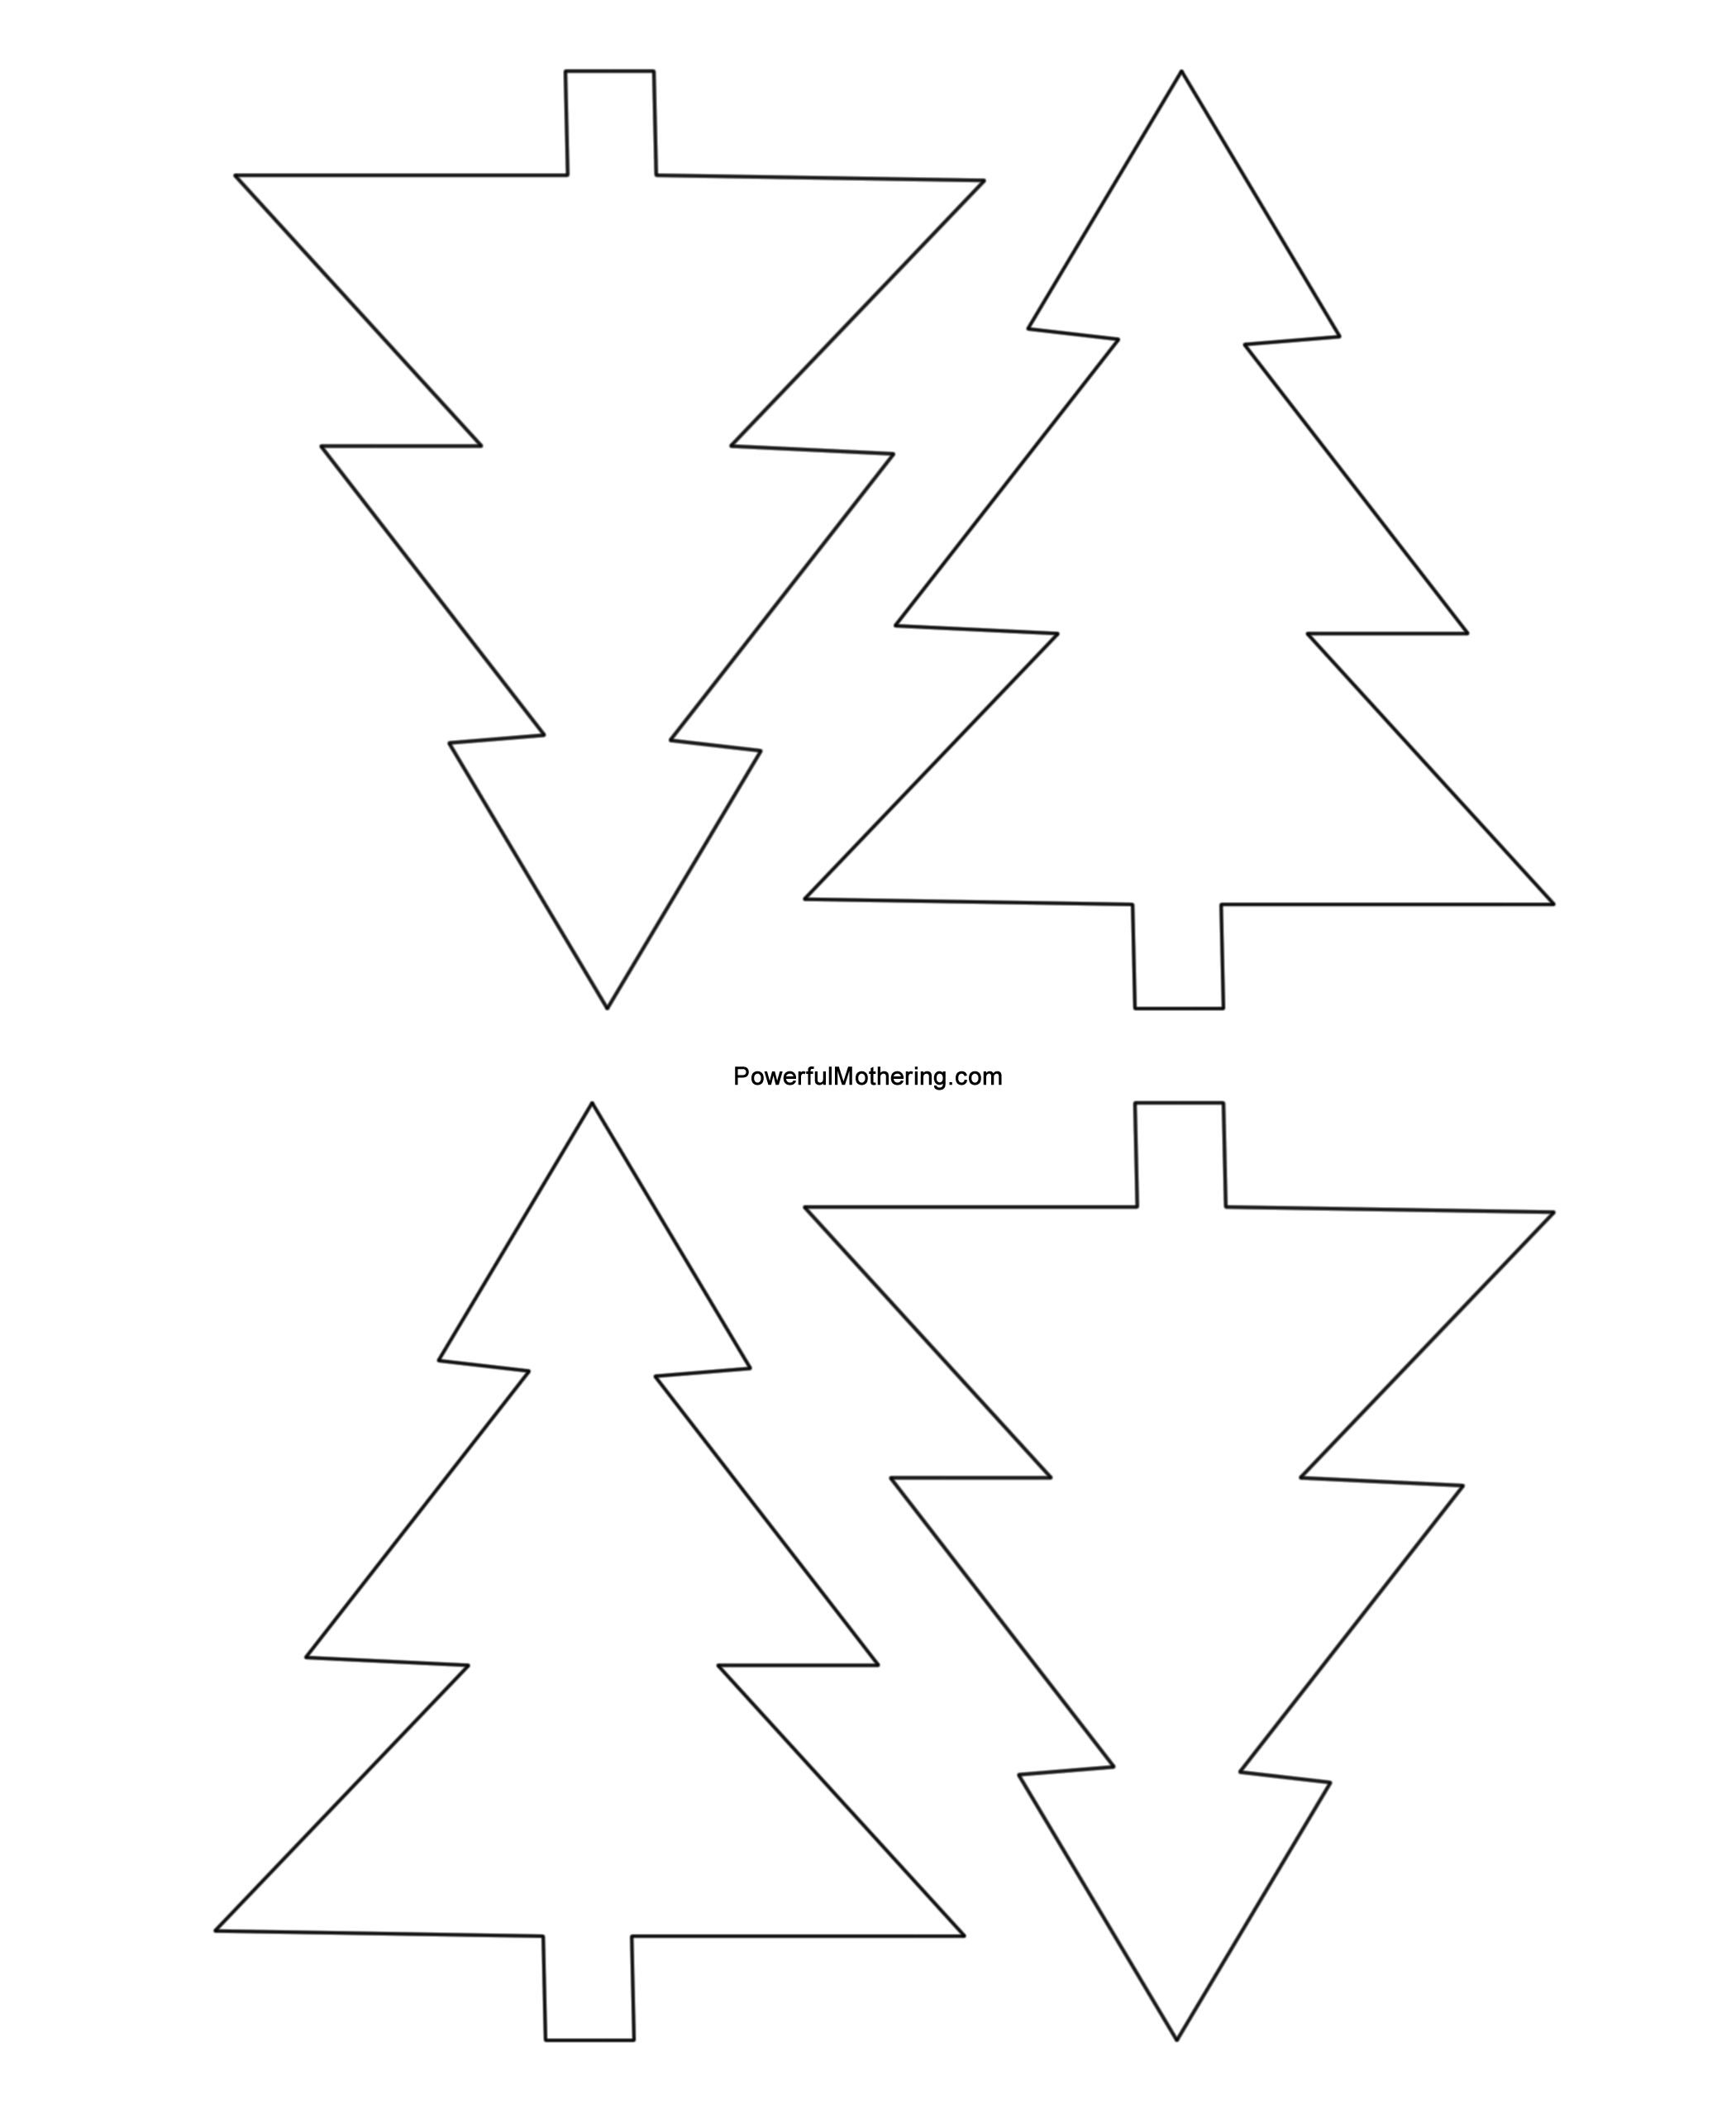 Blank Christmas Shapes Templates   Bing Images · Tree TemplatesCraft ...